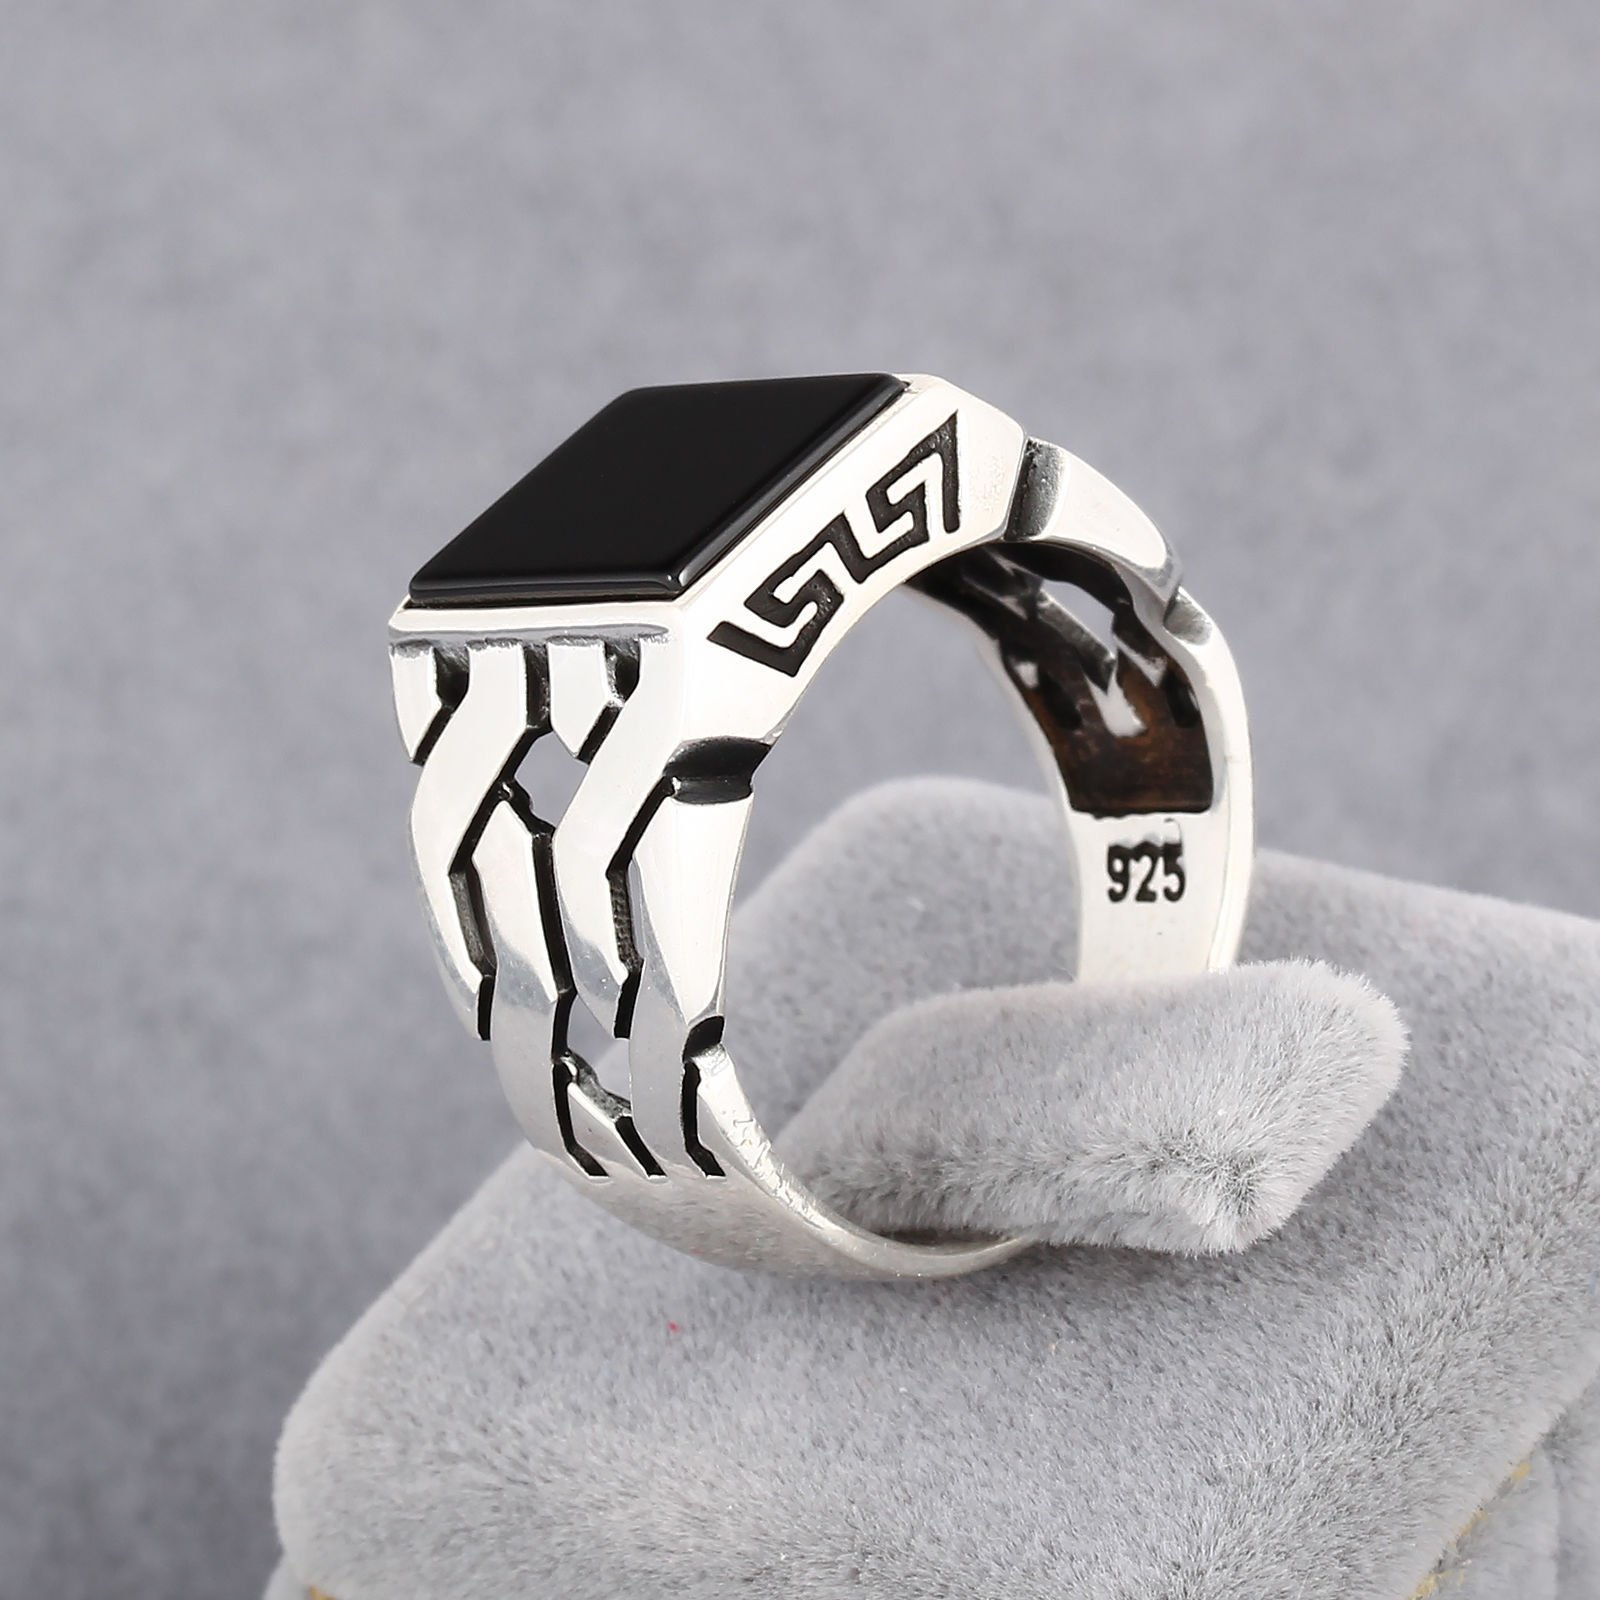 Chimoda Turkish Handmade Jewelry Black Onyx Stone 925 Sterling Silver Men's Ring (9) by Chimoda (Image #8)